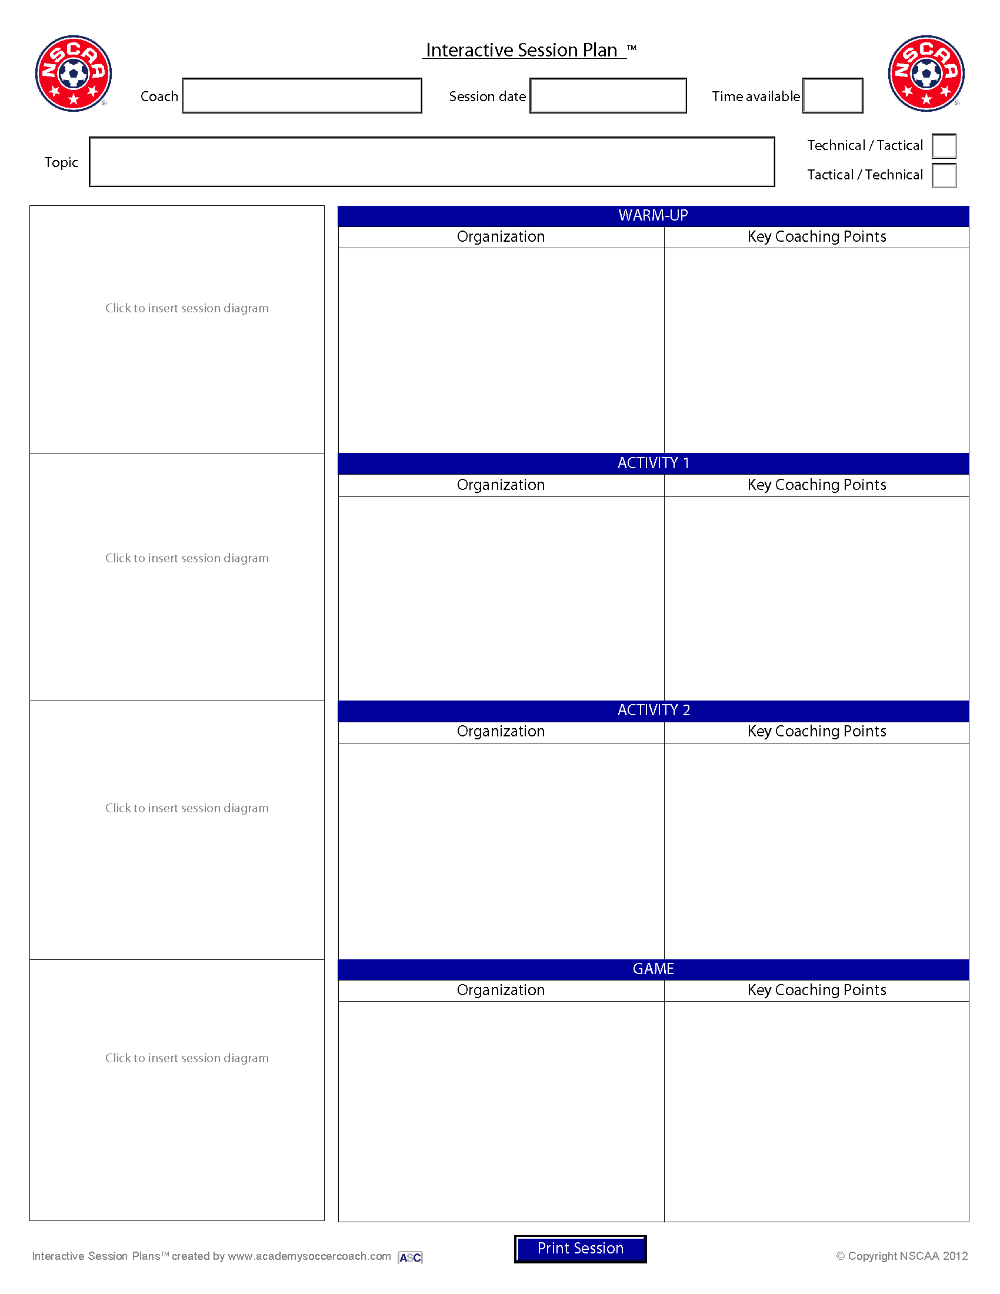 Interactive Session Plans™ Academy Soccer Coach Asc